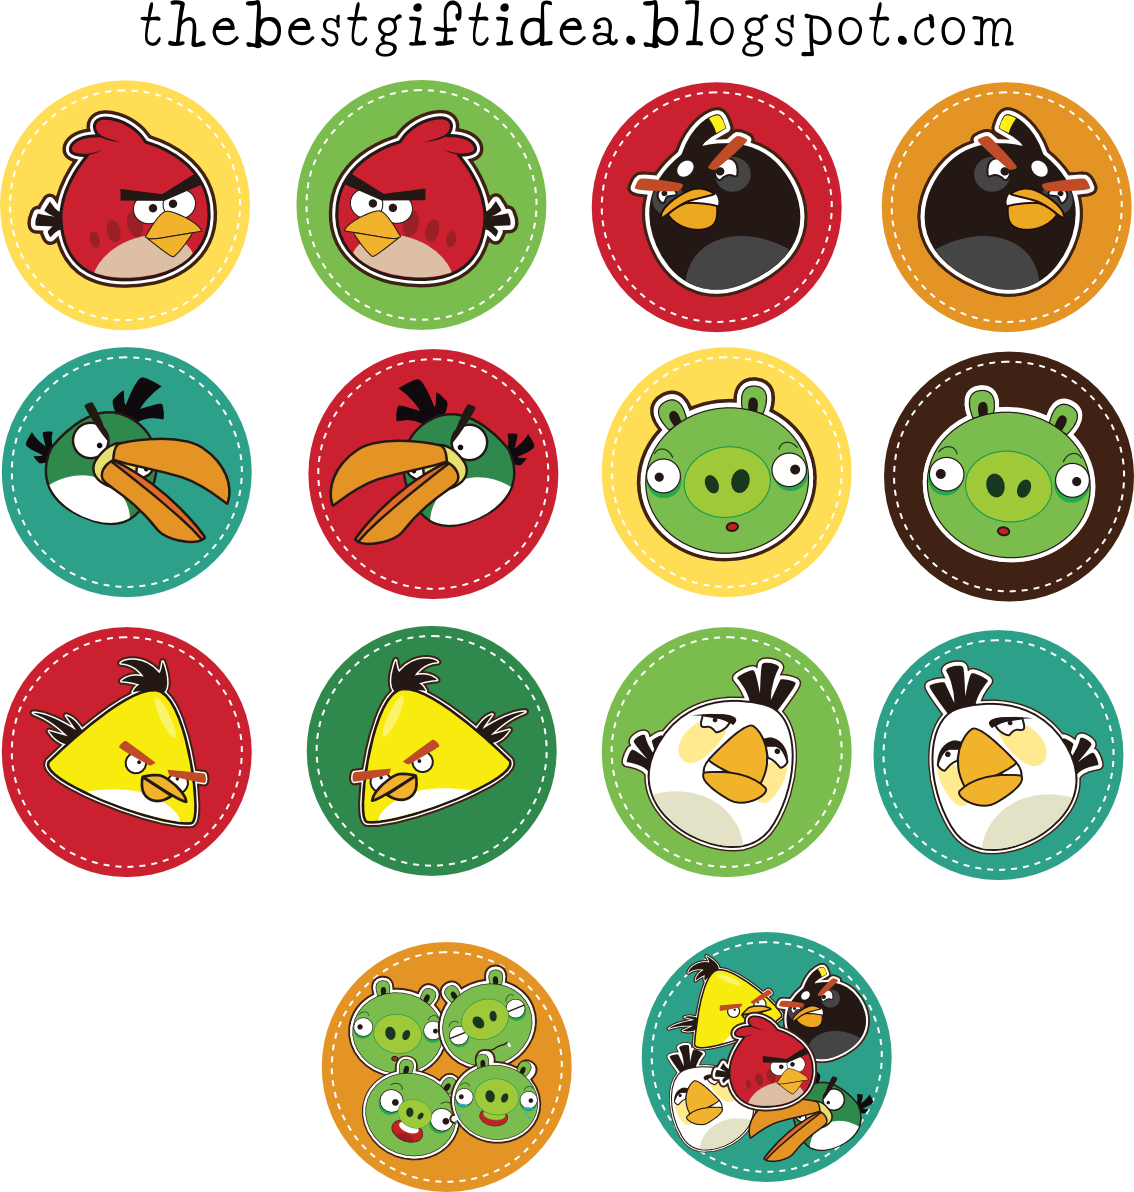 graphic relating to Angry Bird Printable named Indignant Birds Printable Cupcake Topper No cost - Least complicated Present Designs Site